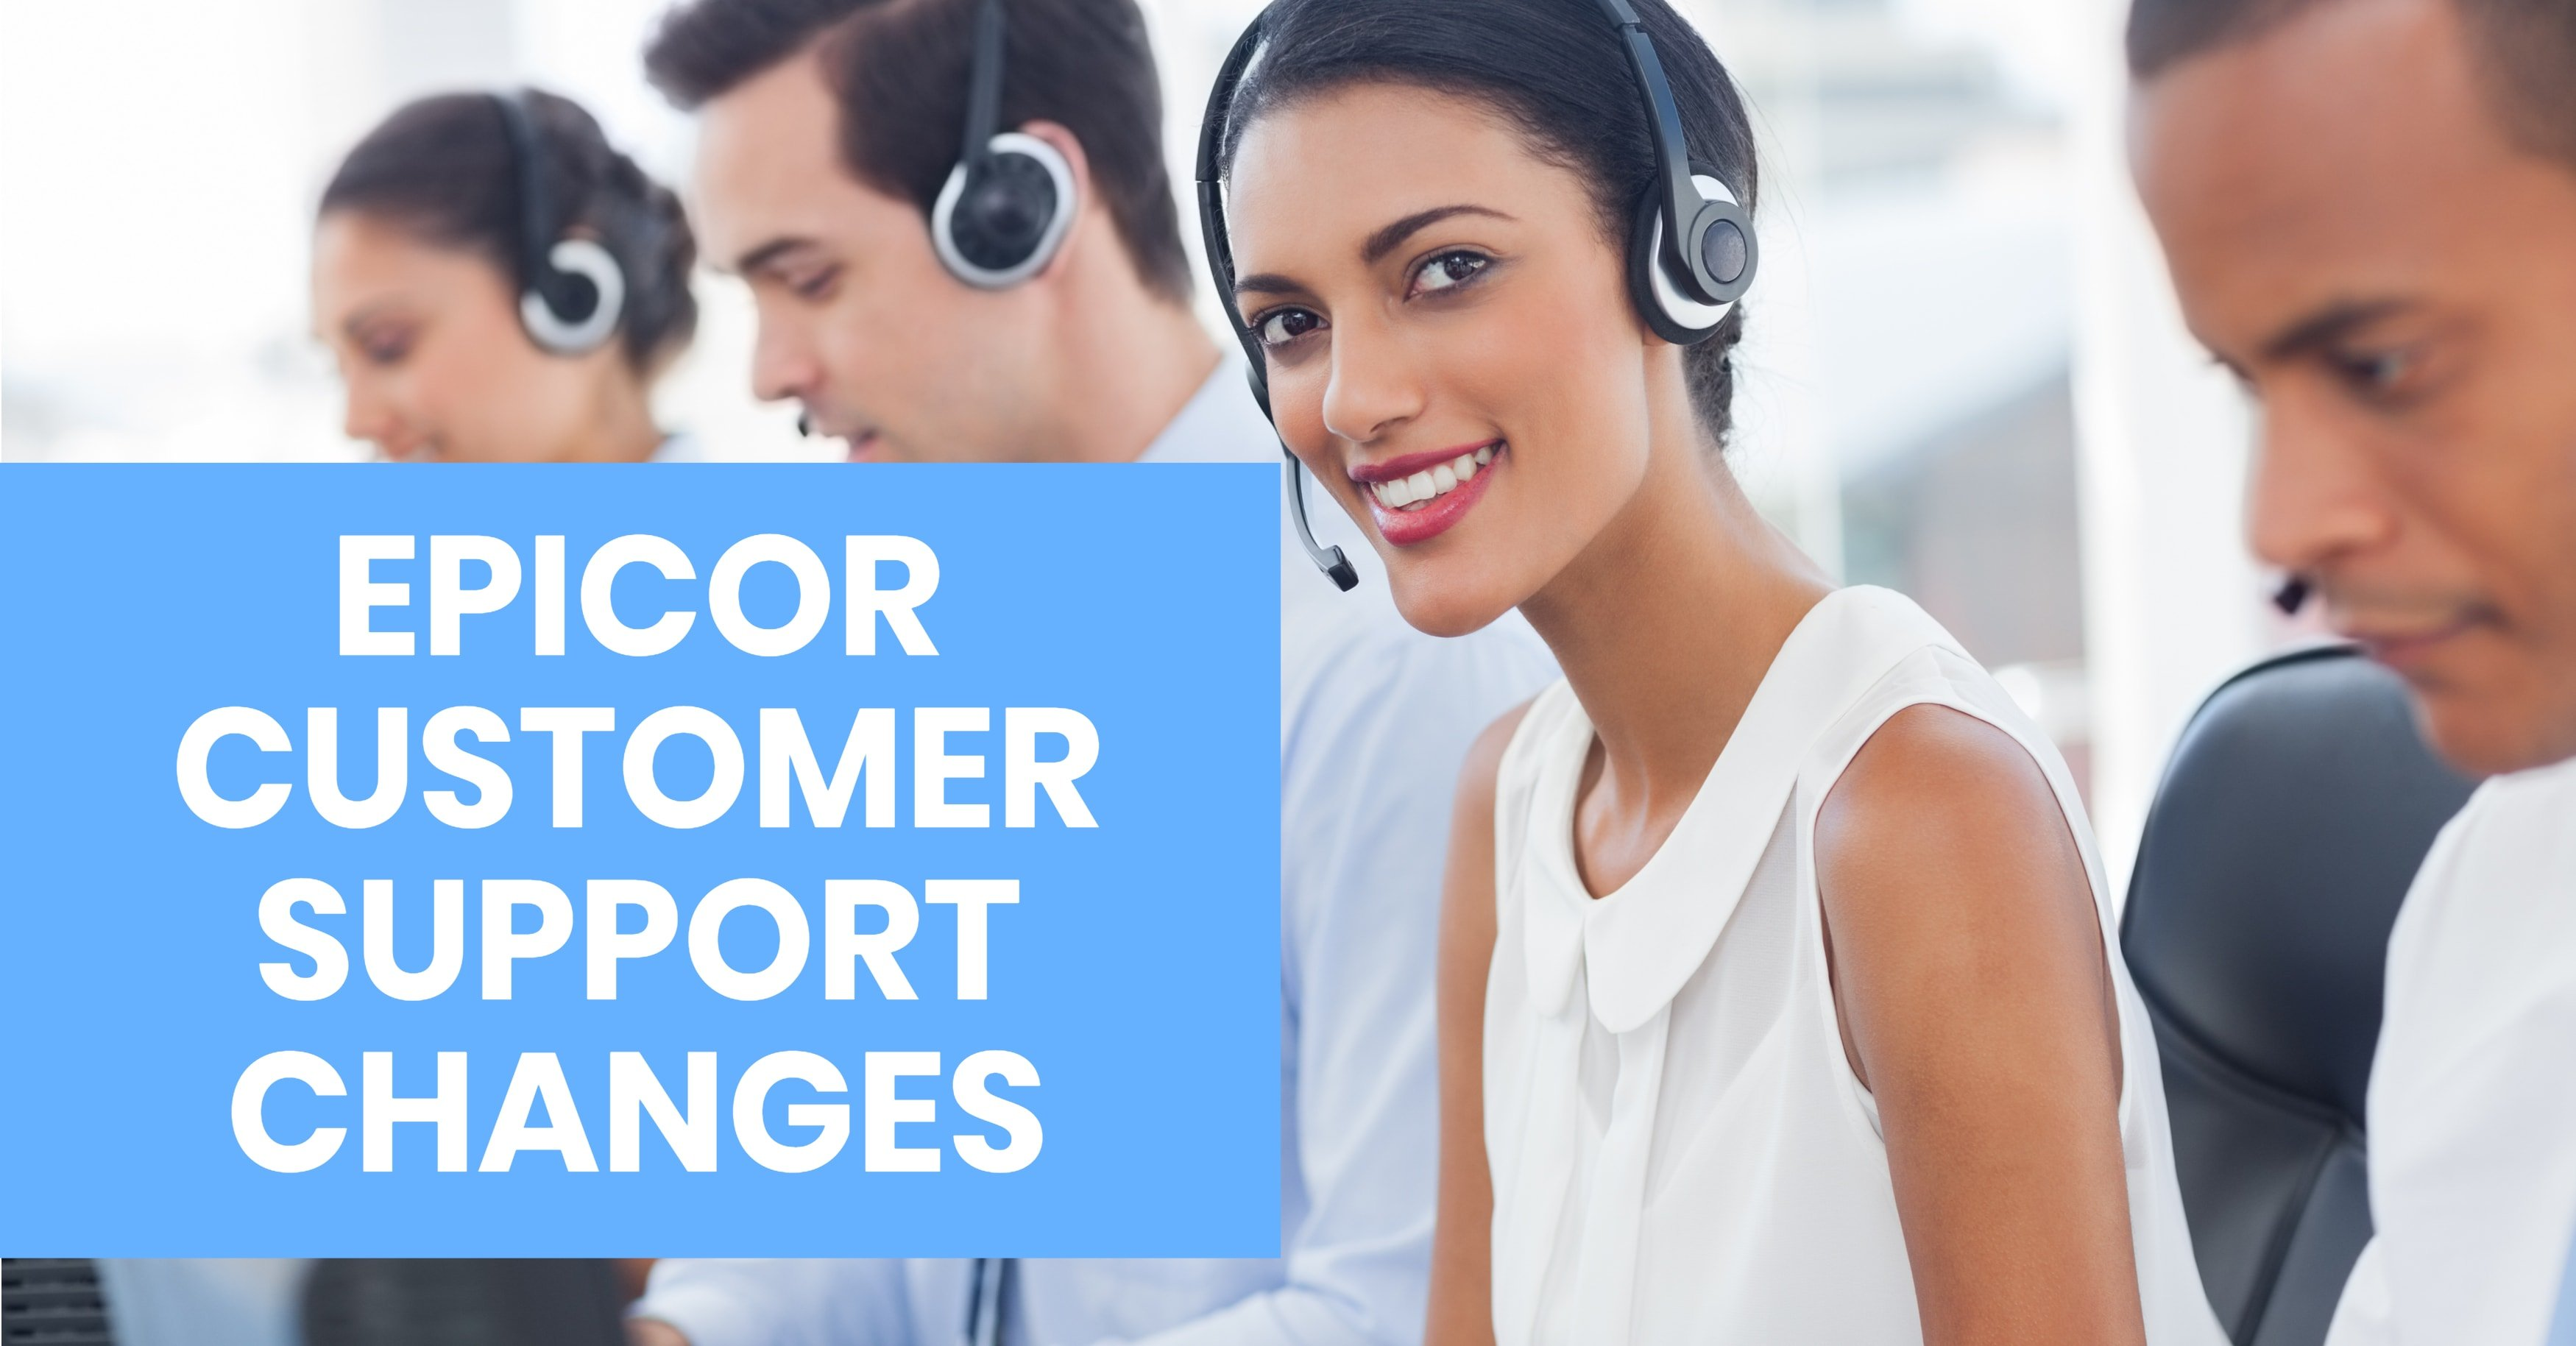 What Epicor Customer Support Changes Mean for You